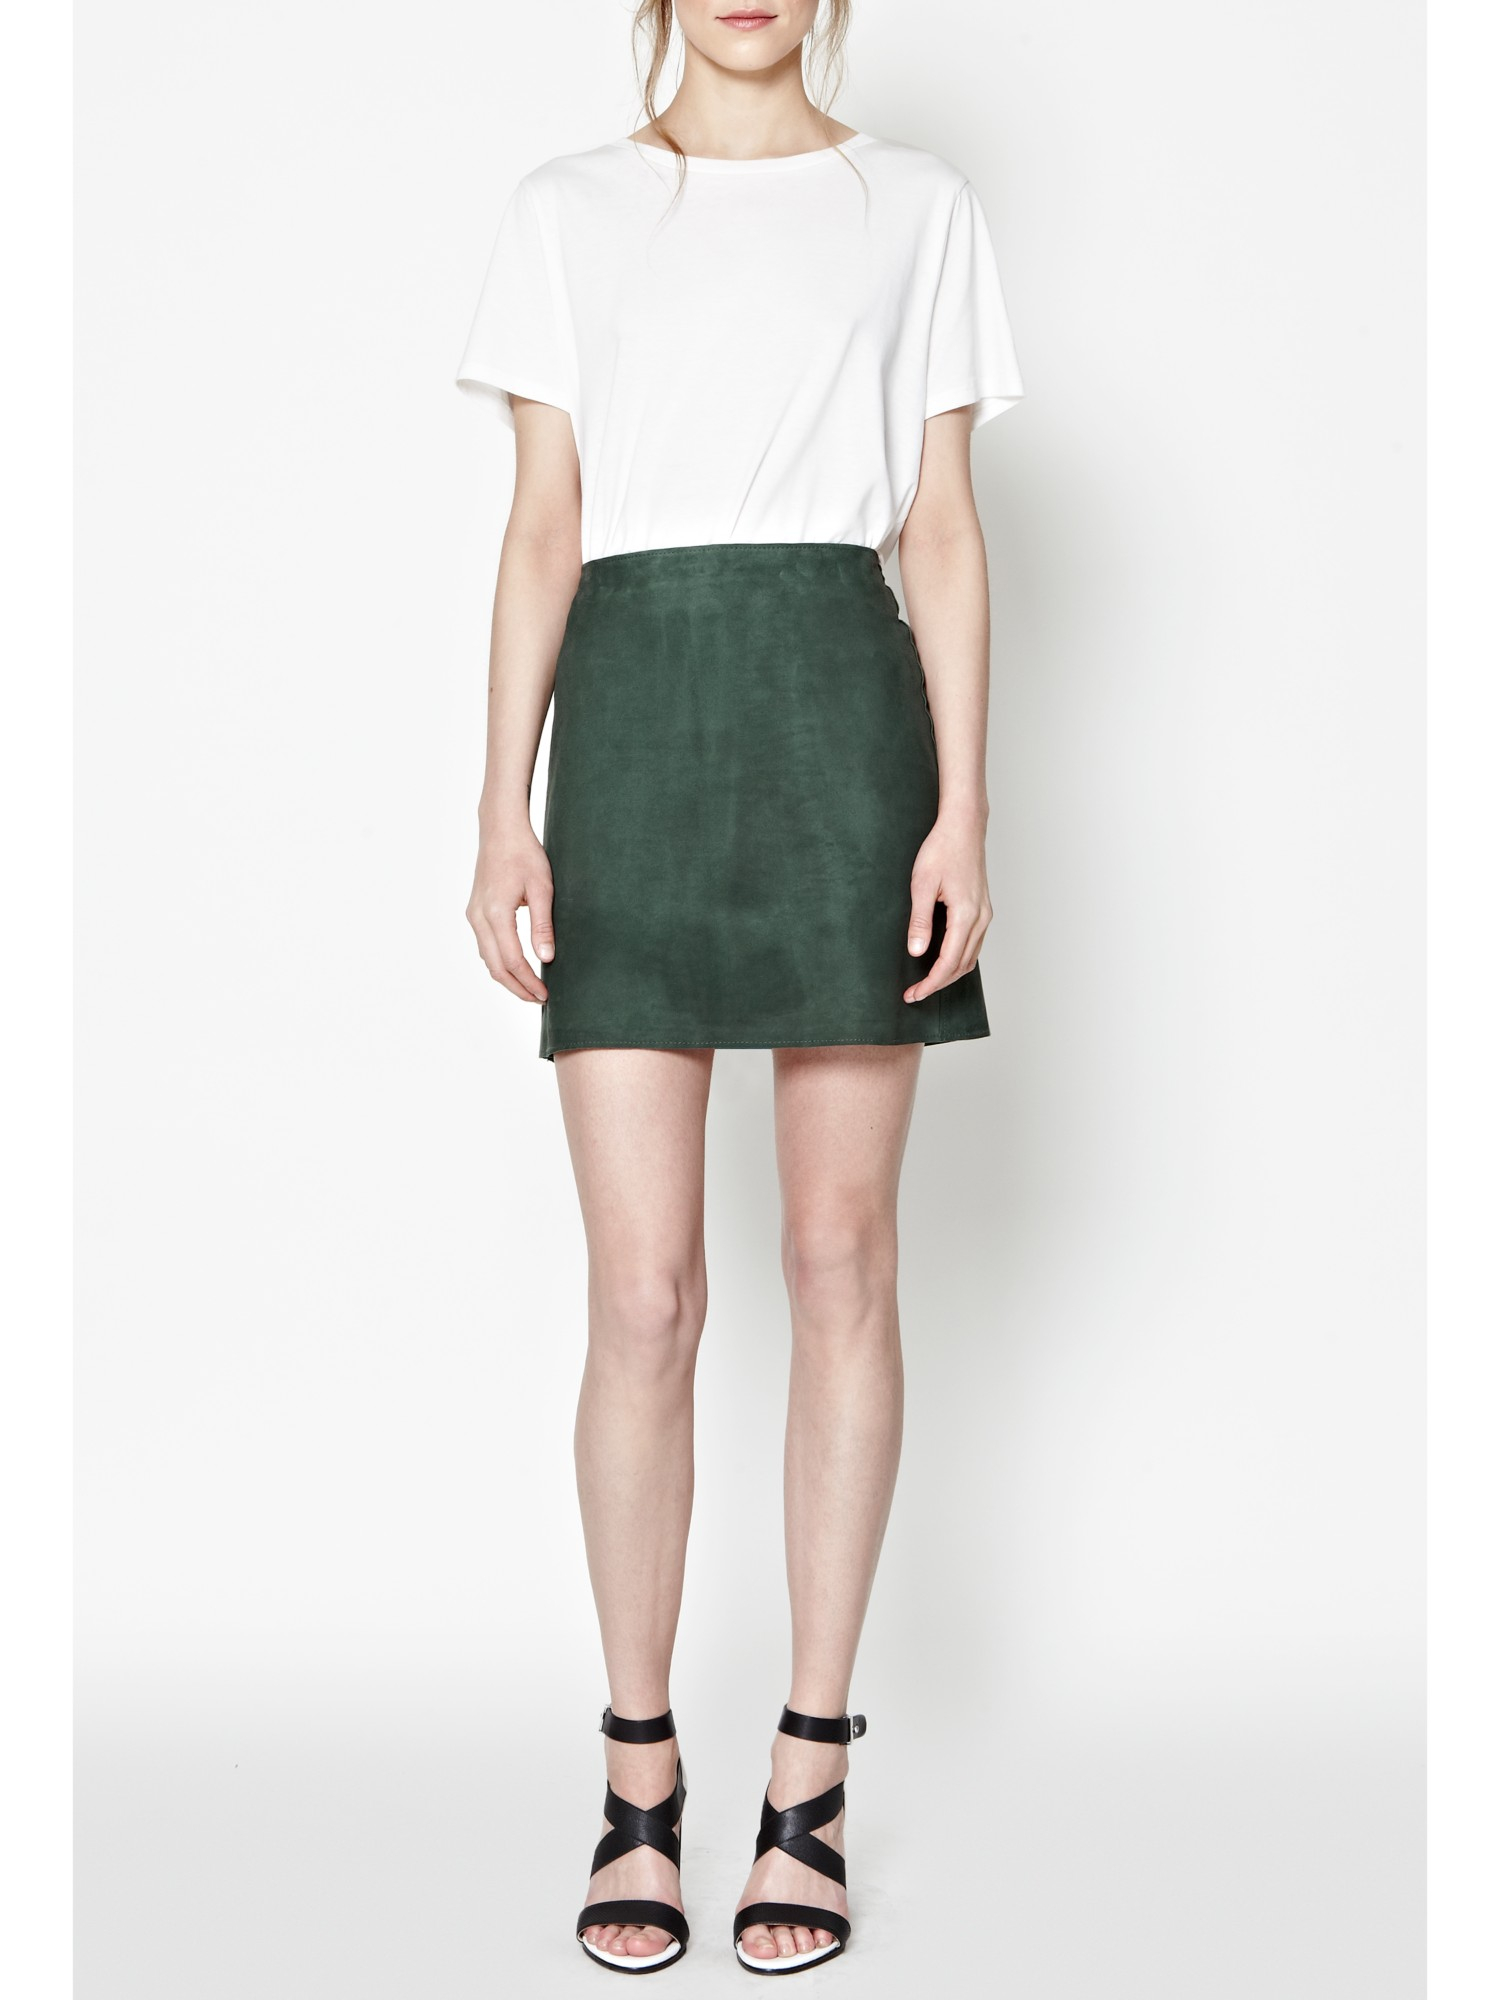 French connection Sandie Suede Mini Skirt in Green | Lyst